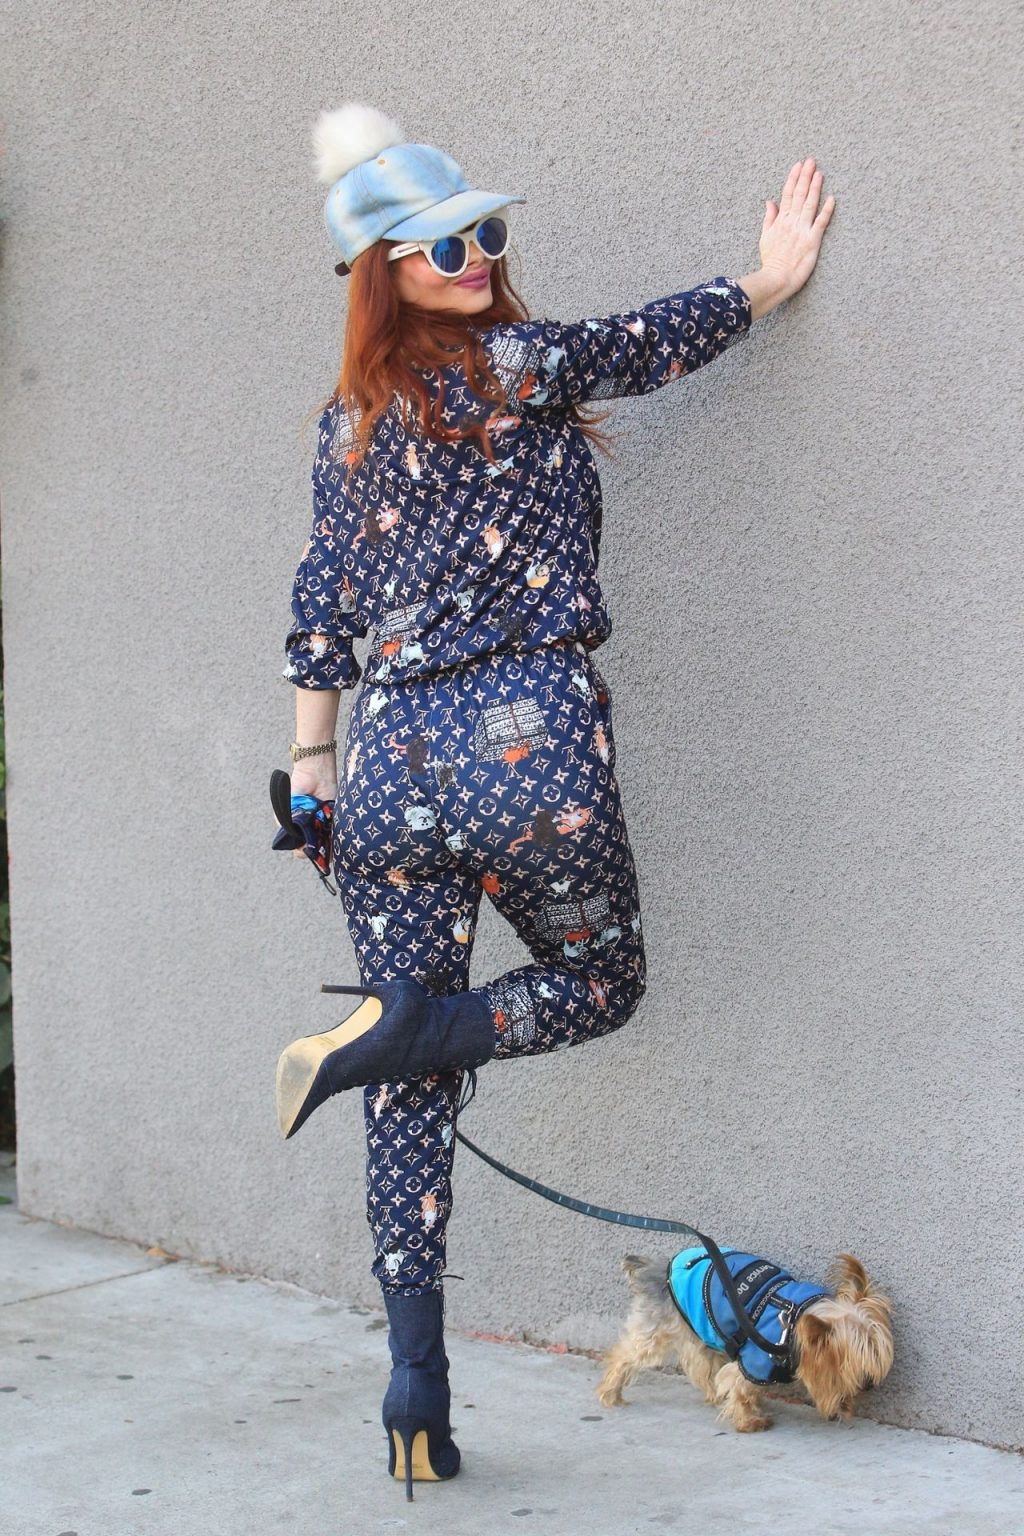 Phoebe Price Stops to Strike a Pose While Shopping in Hollywood (14 Photos)